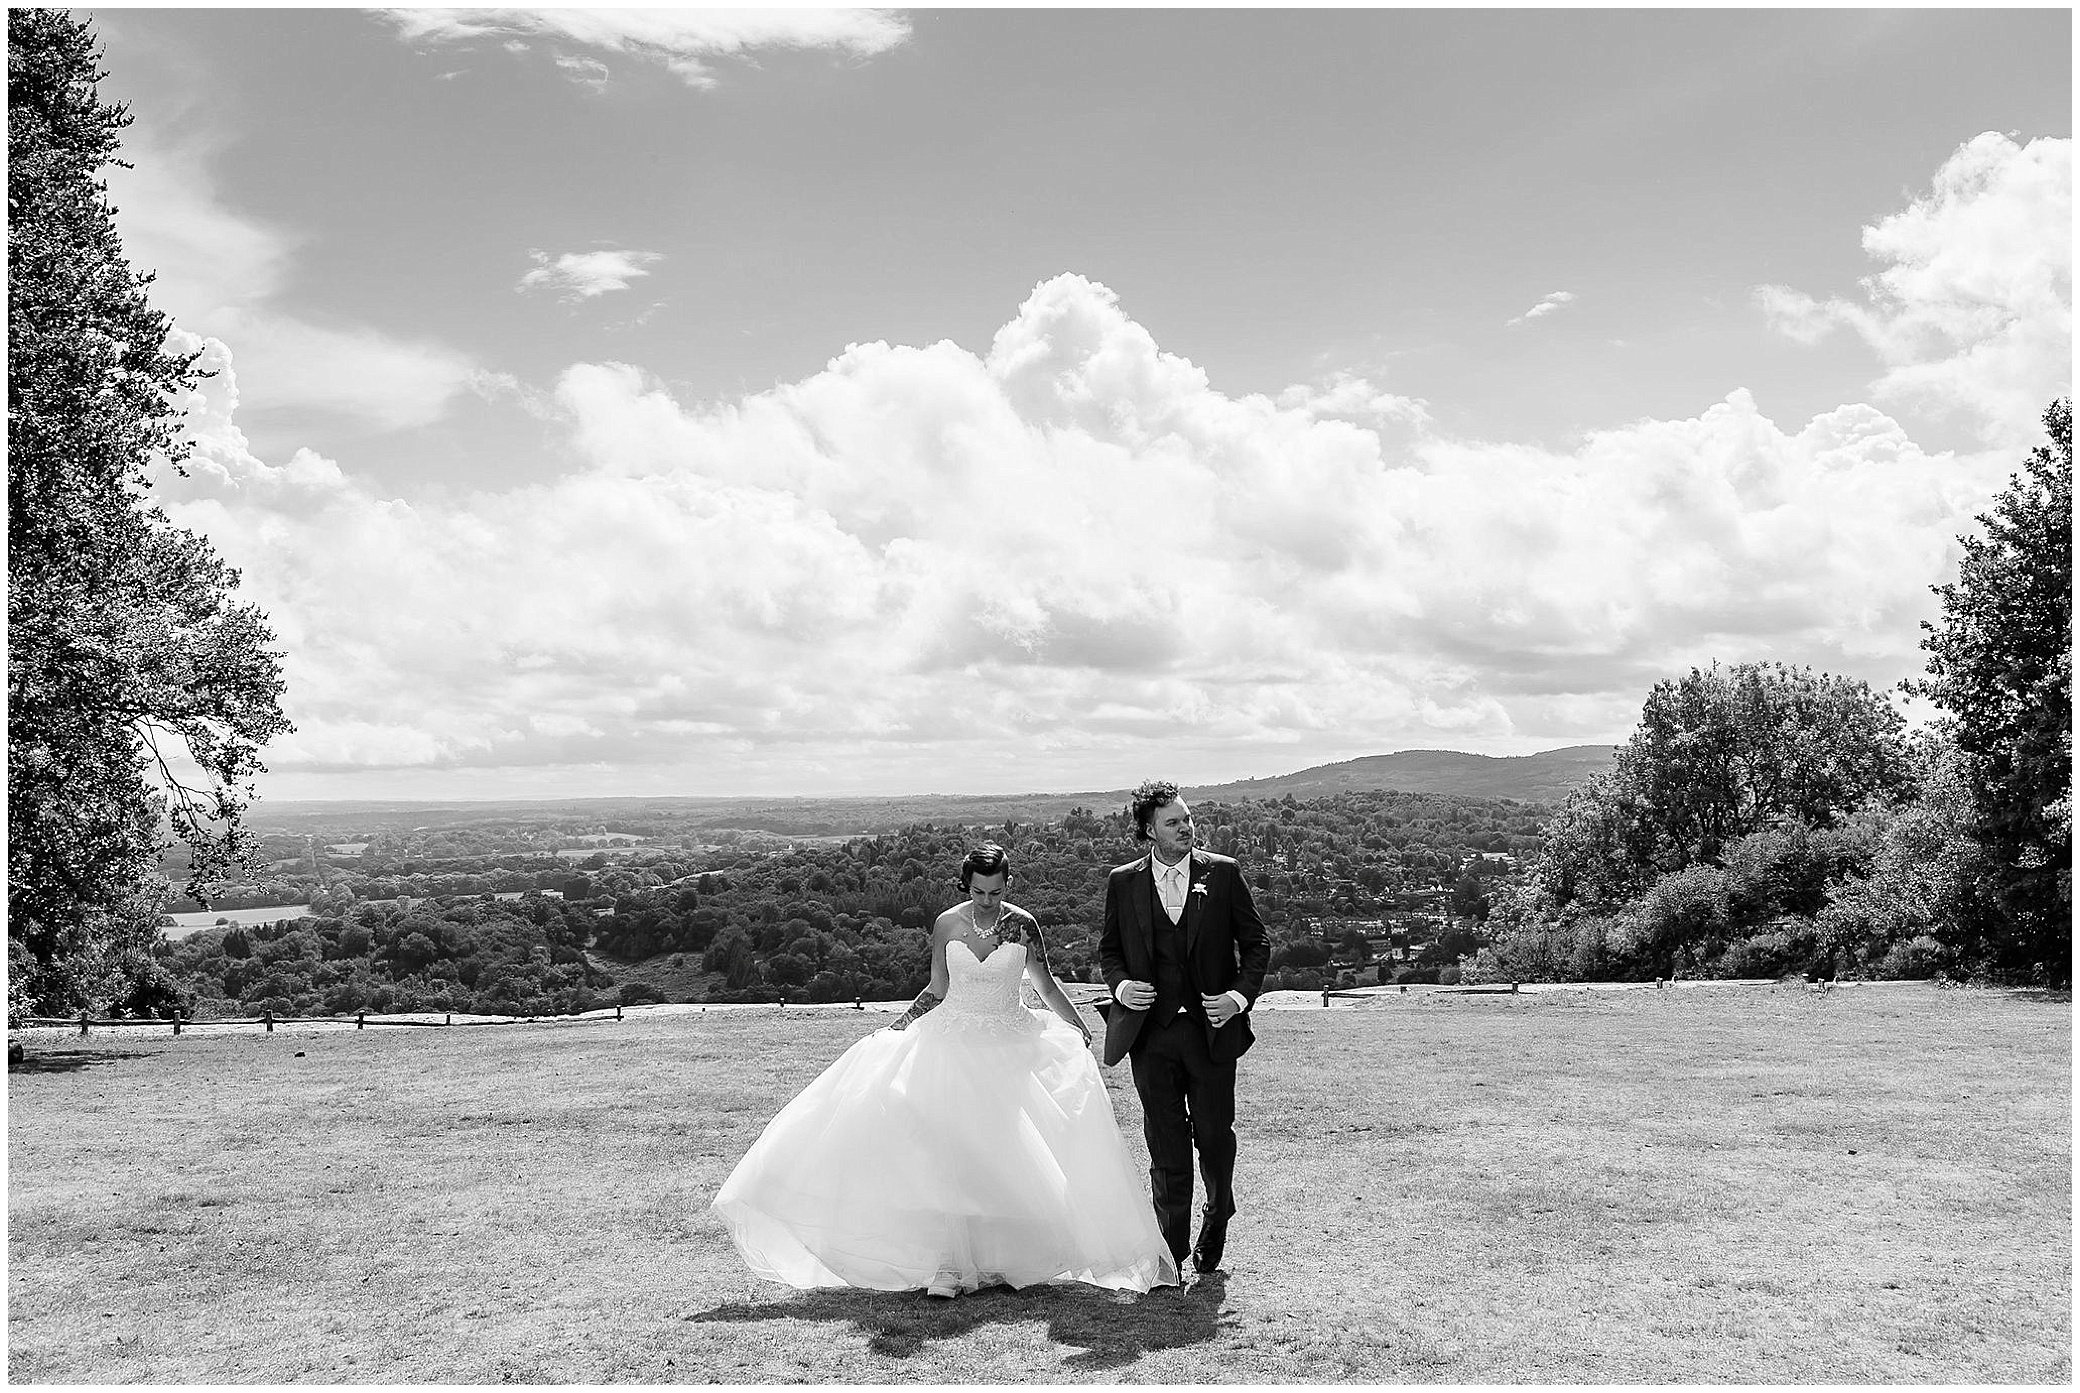 black and white image of a bride and groom walking on Boxhill in Surrey